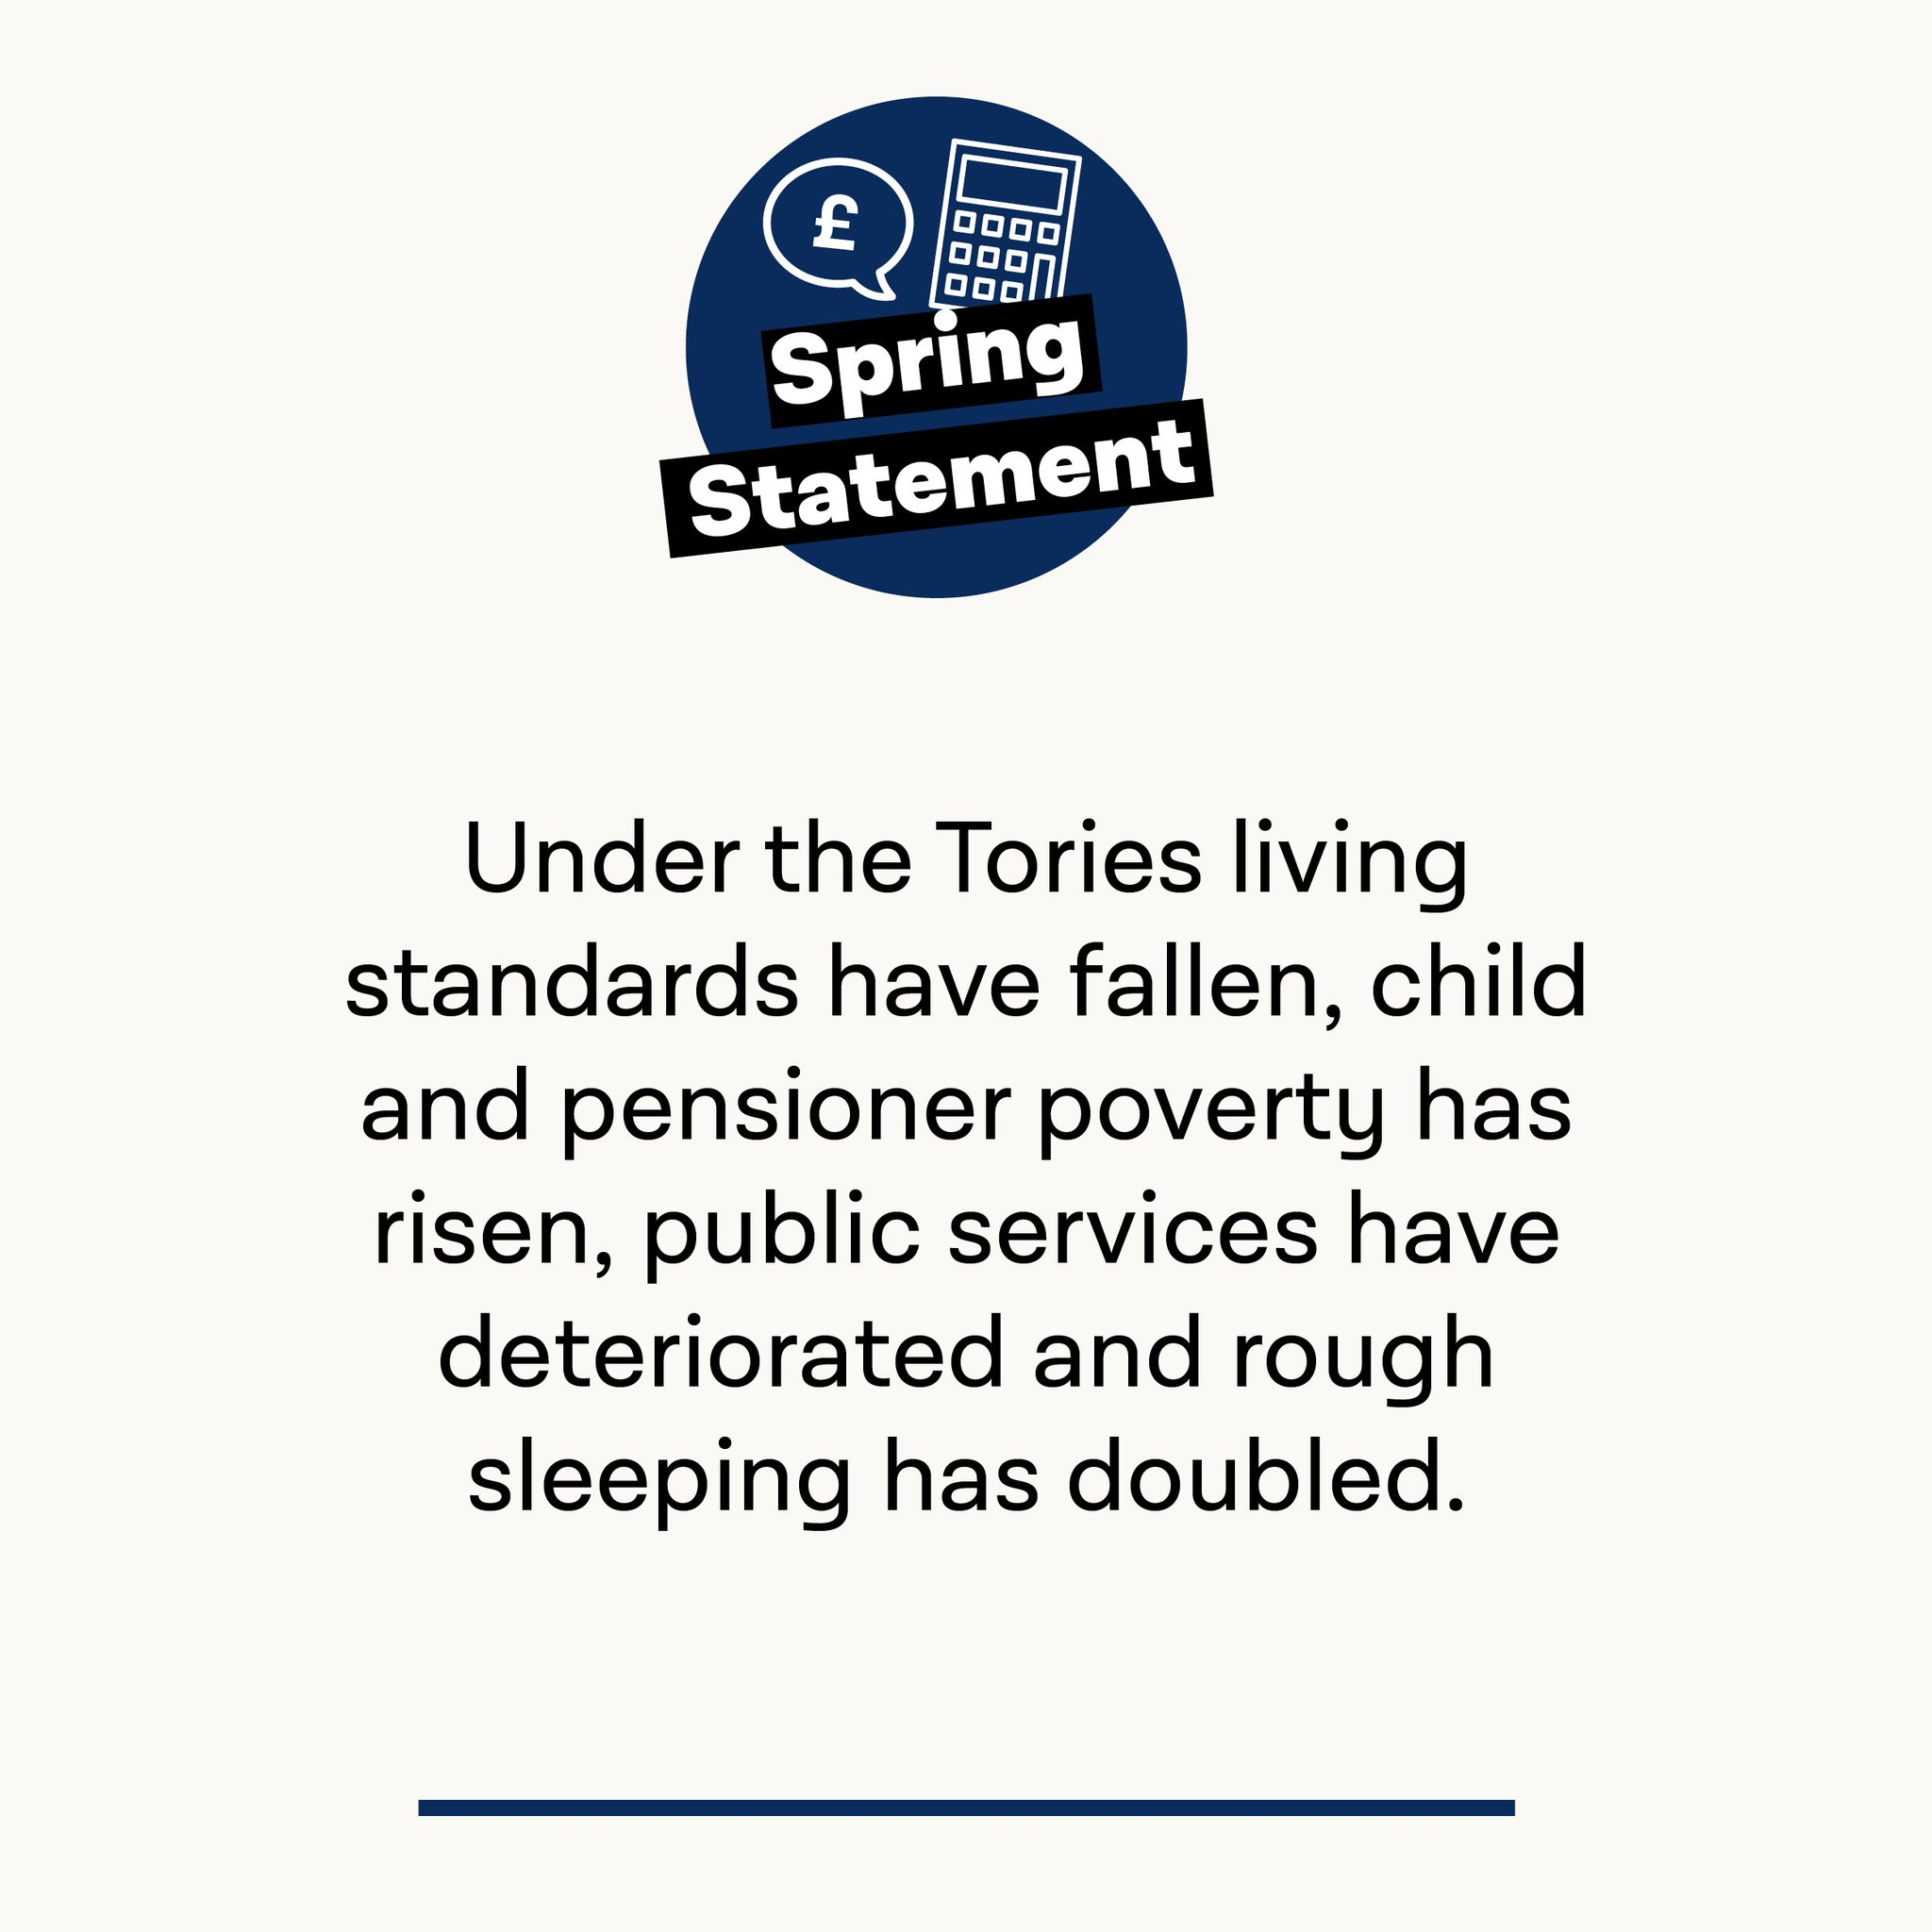 Britain is worse off under the Tories. #SpringStatement https://t.co/8Lzfb97tc0